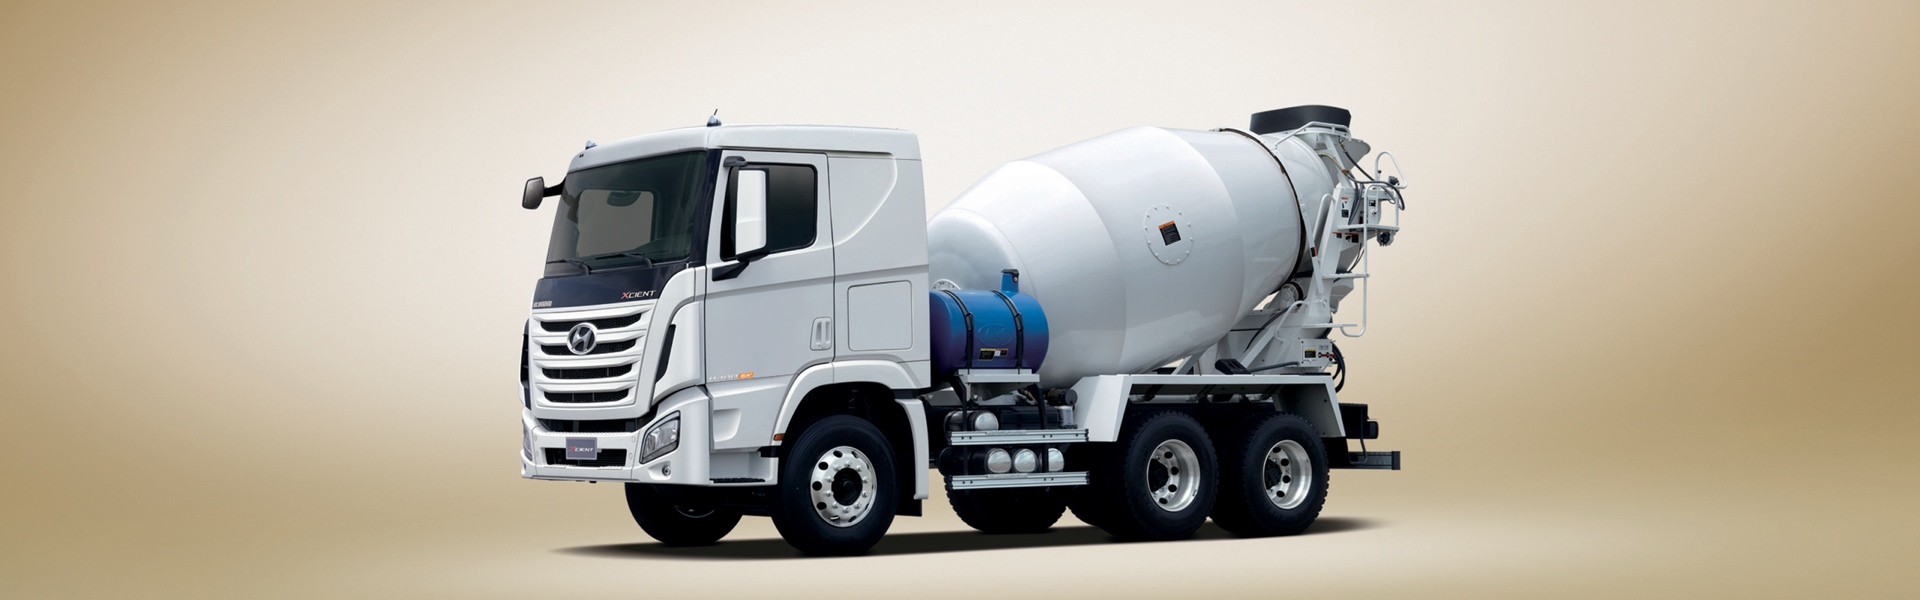 Roles of the Mixer Truck